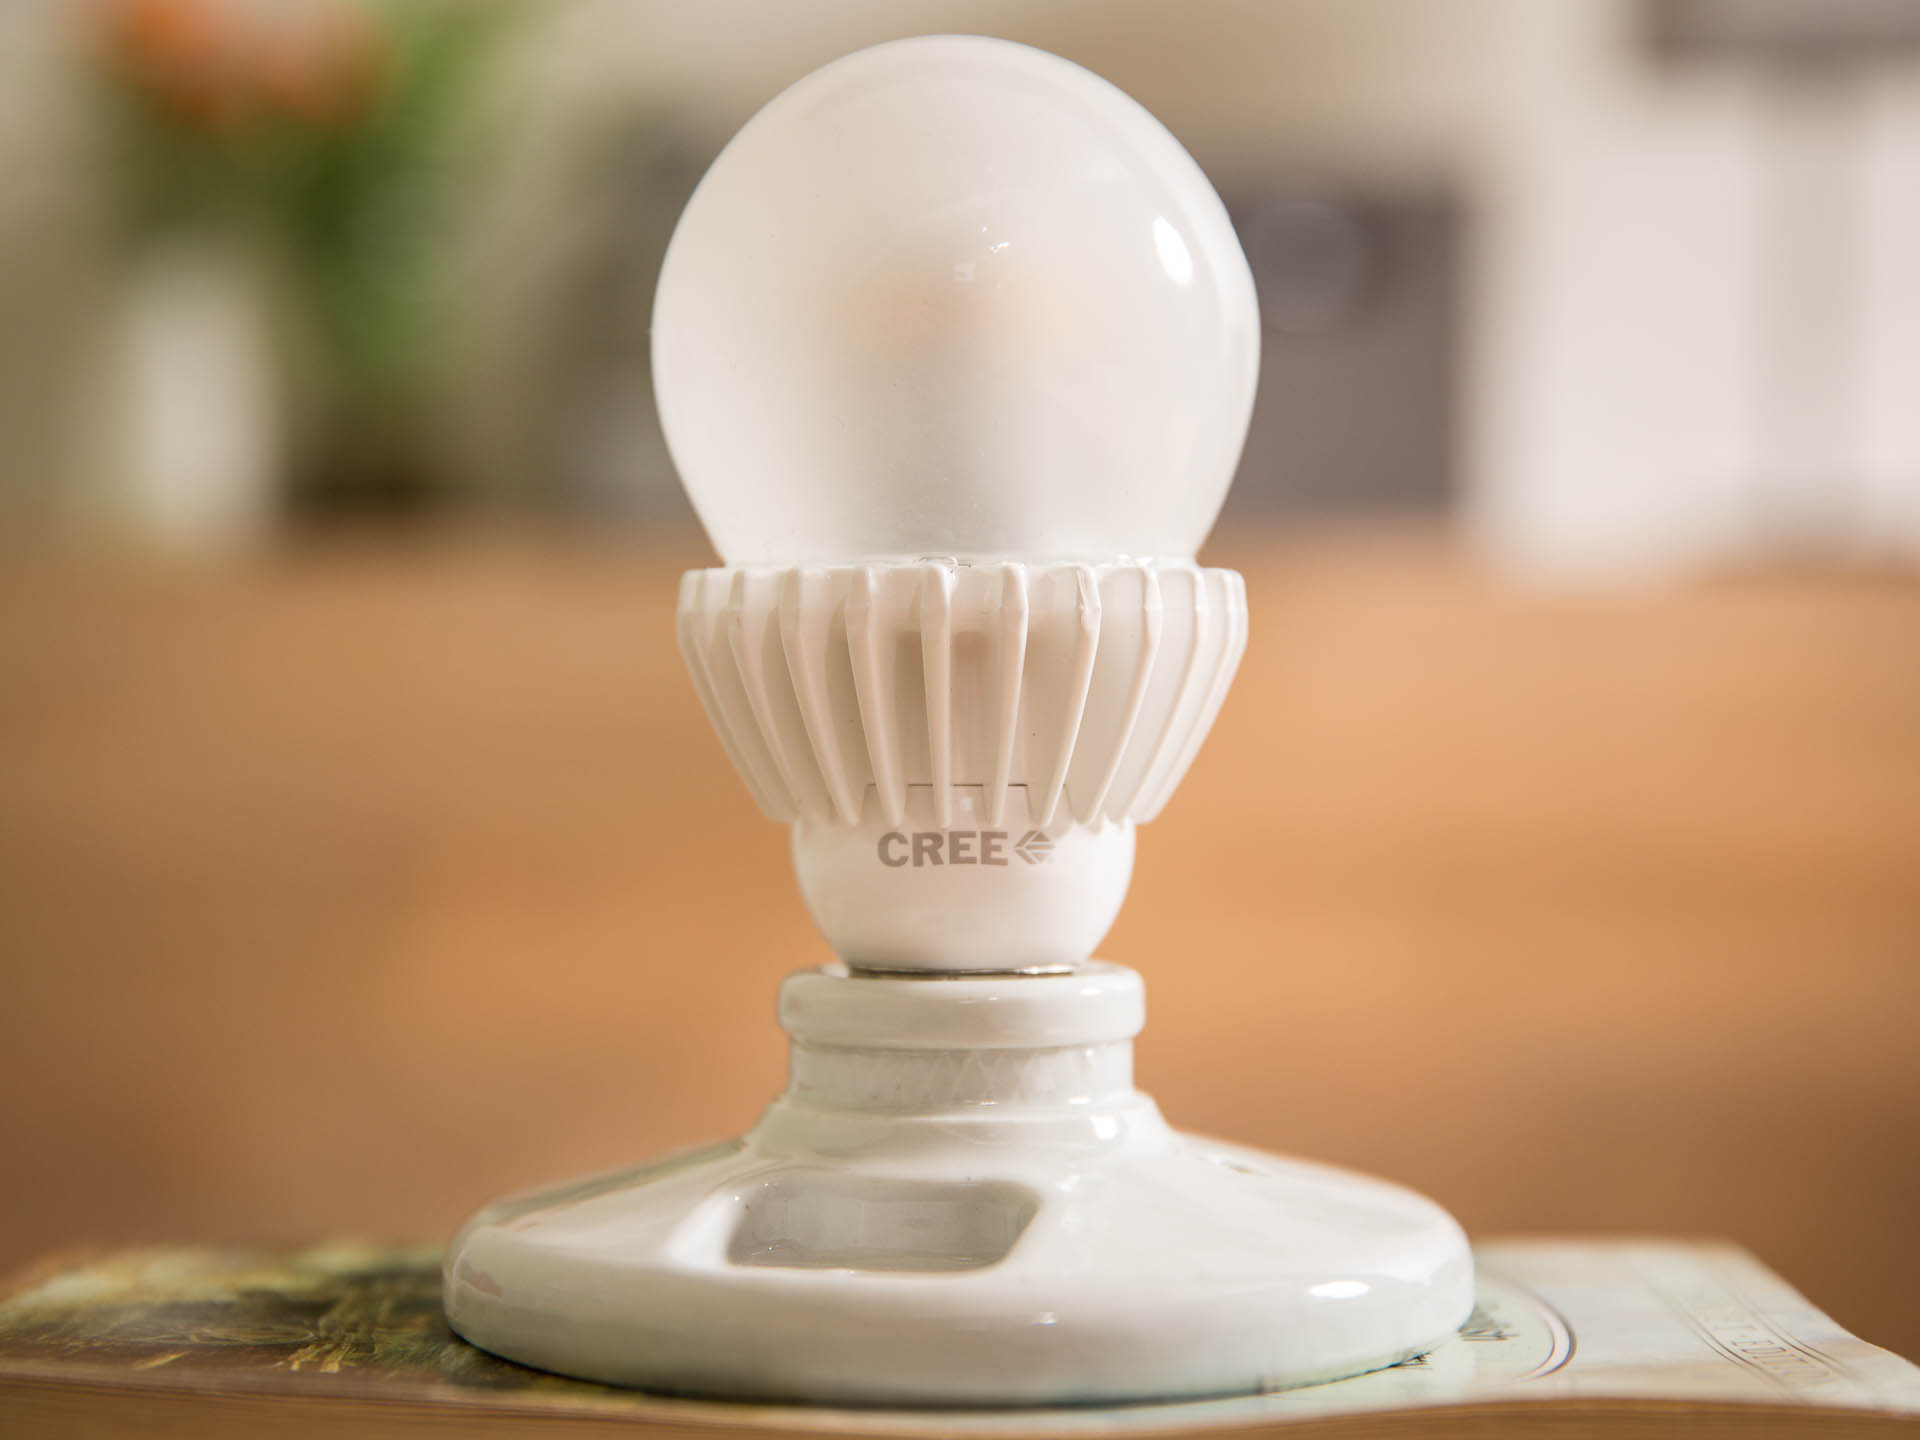 cree-100w-led-bulb-product-photos-5.jpg